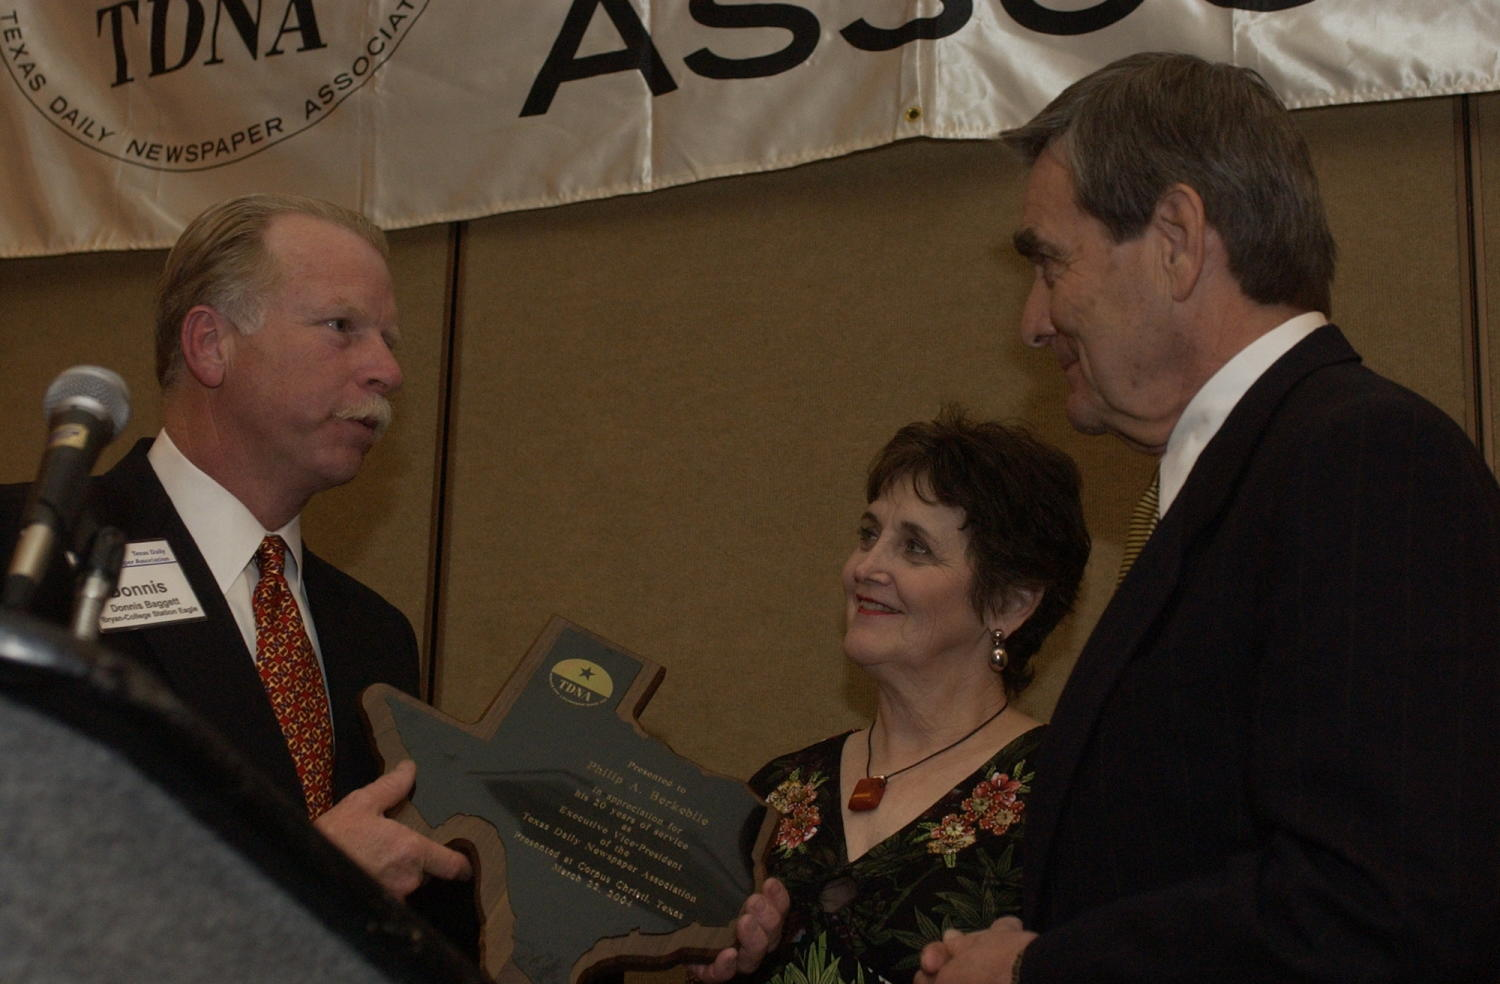 [Donnis Baggett presenting an award to Phillip A. Berkebile, 2], Photograph of Donnis Baggett (left) presenting an award to Phillip A. Berkebile and a woman presumed to be his wife, during the 2004 Texas Daily News Association annual conference held in Corpus Christi.,